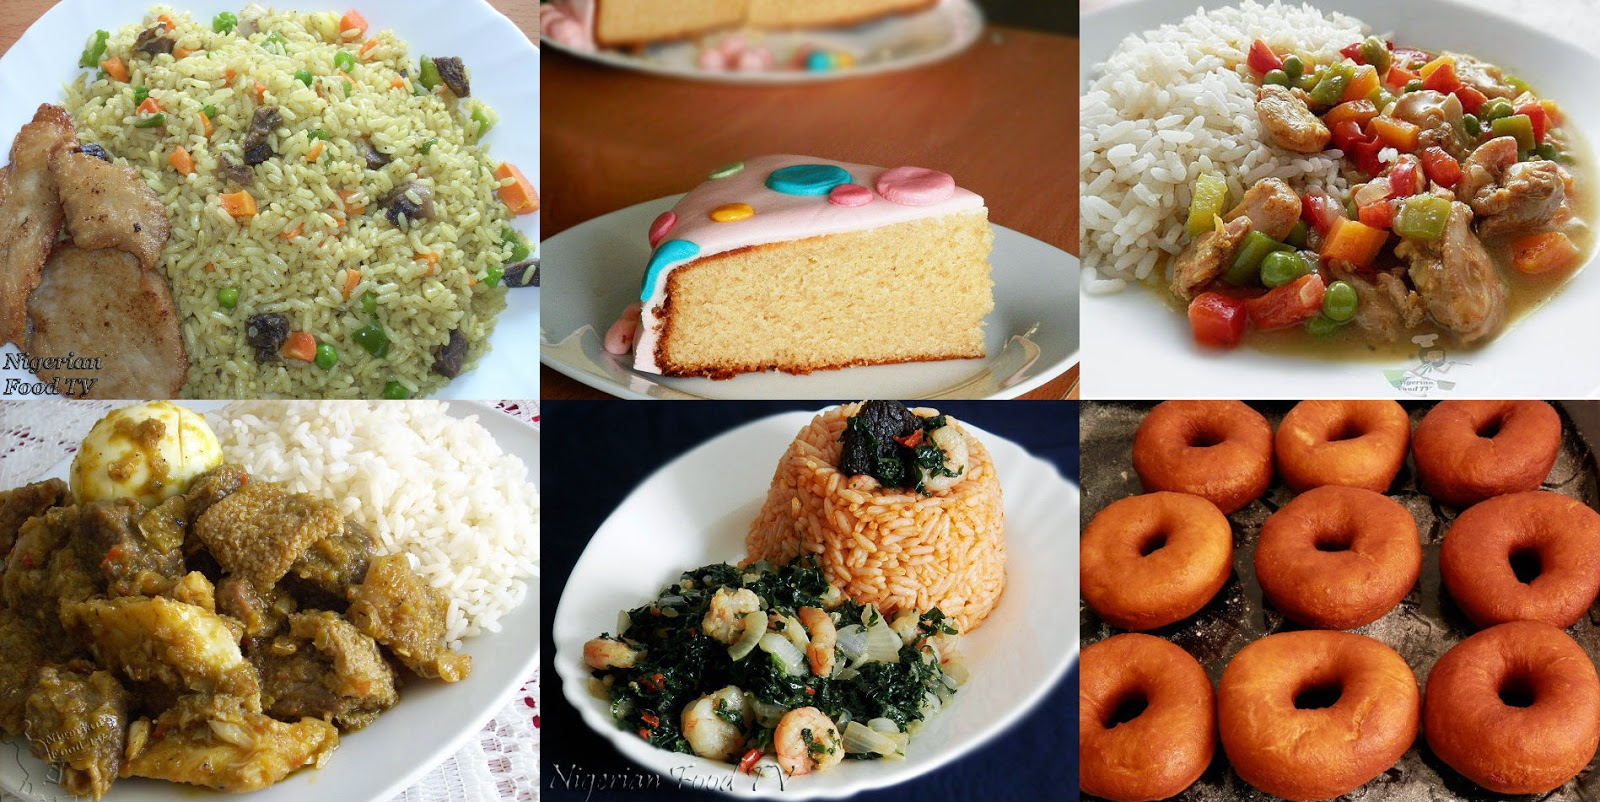 Popular nigerian christmas food recipes xmas food snacks nigerian christmas is usually celebrated in style with lots of delicious and tasty home cooked meals family and friends laughing out loud and catching up forumfinder Image collections